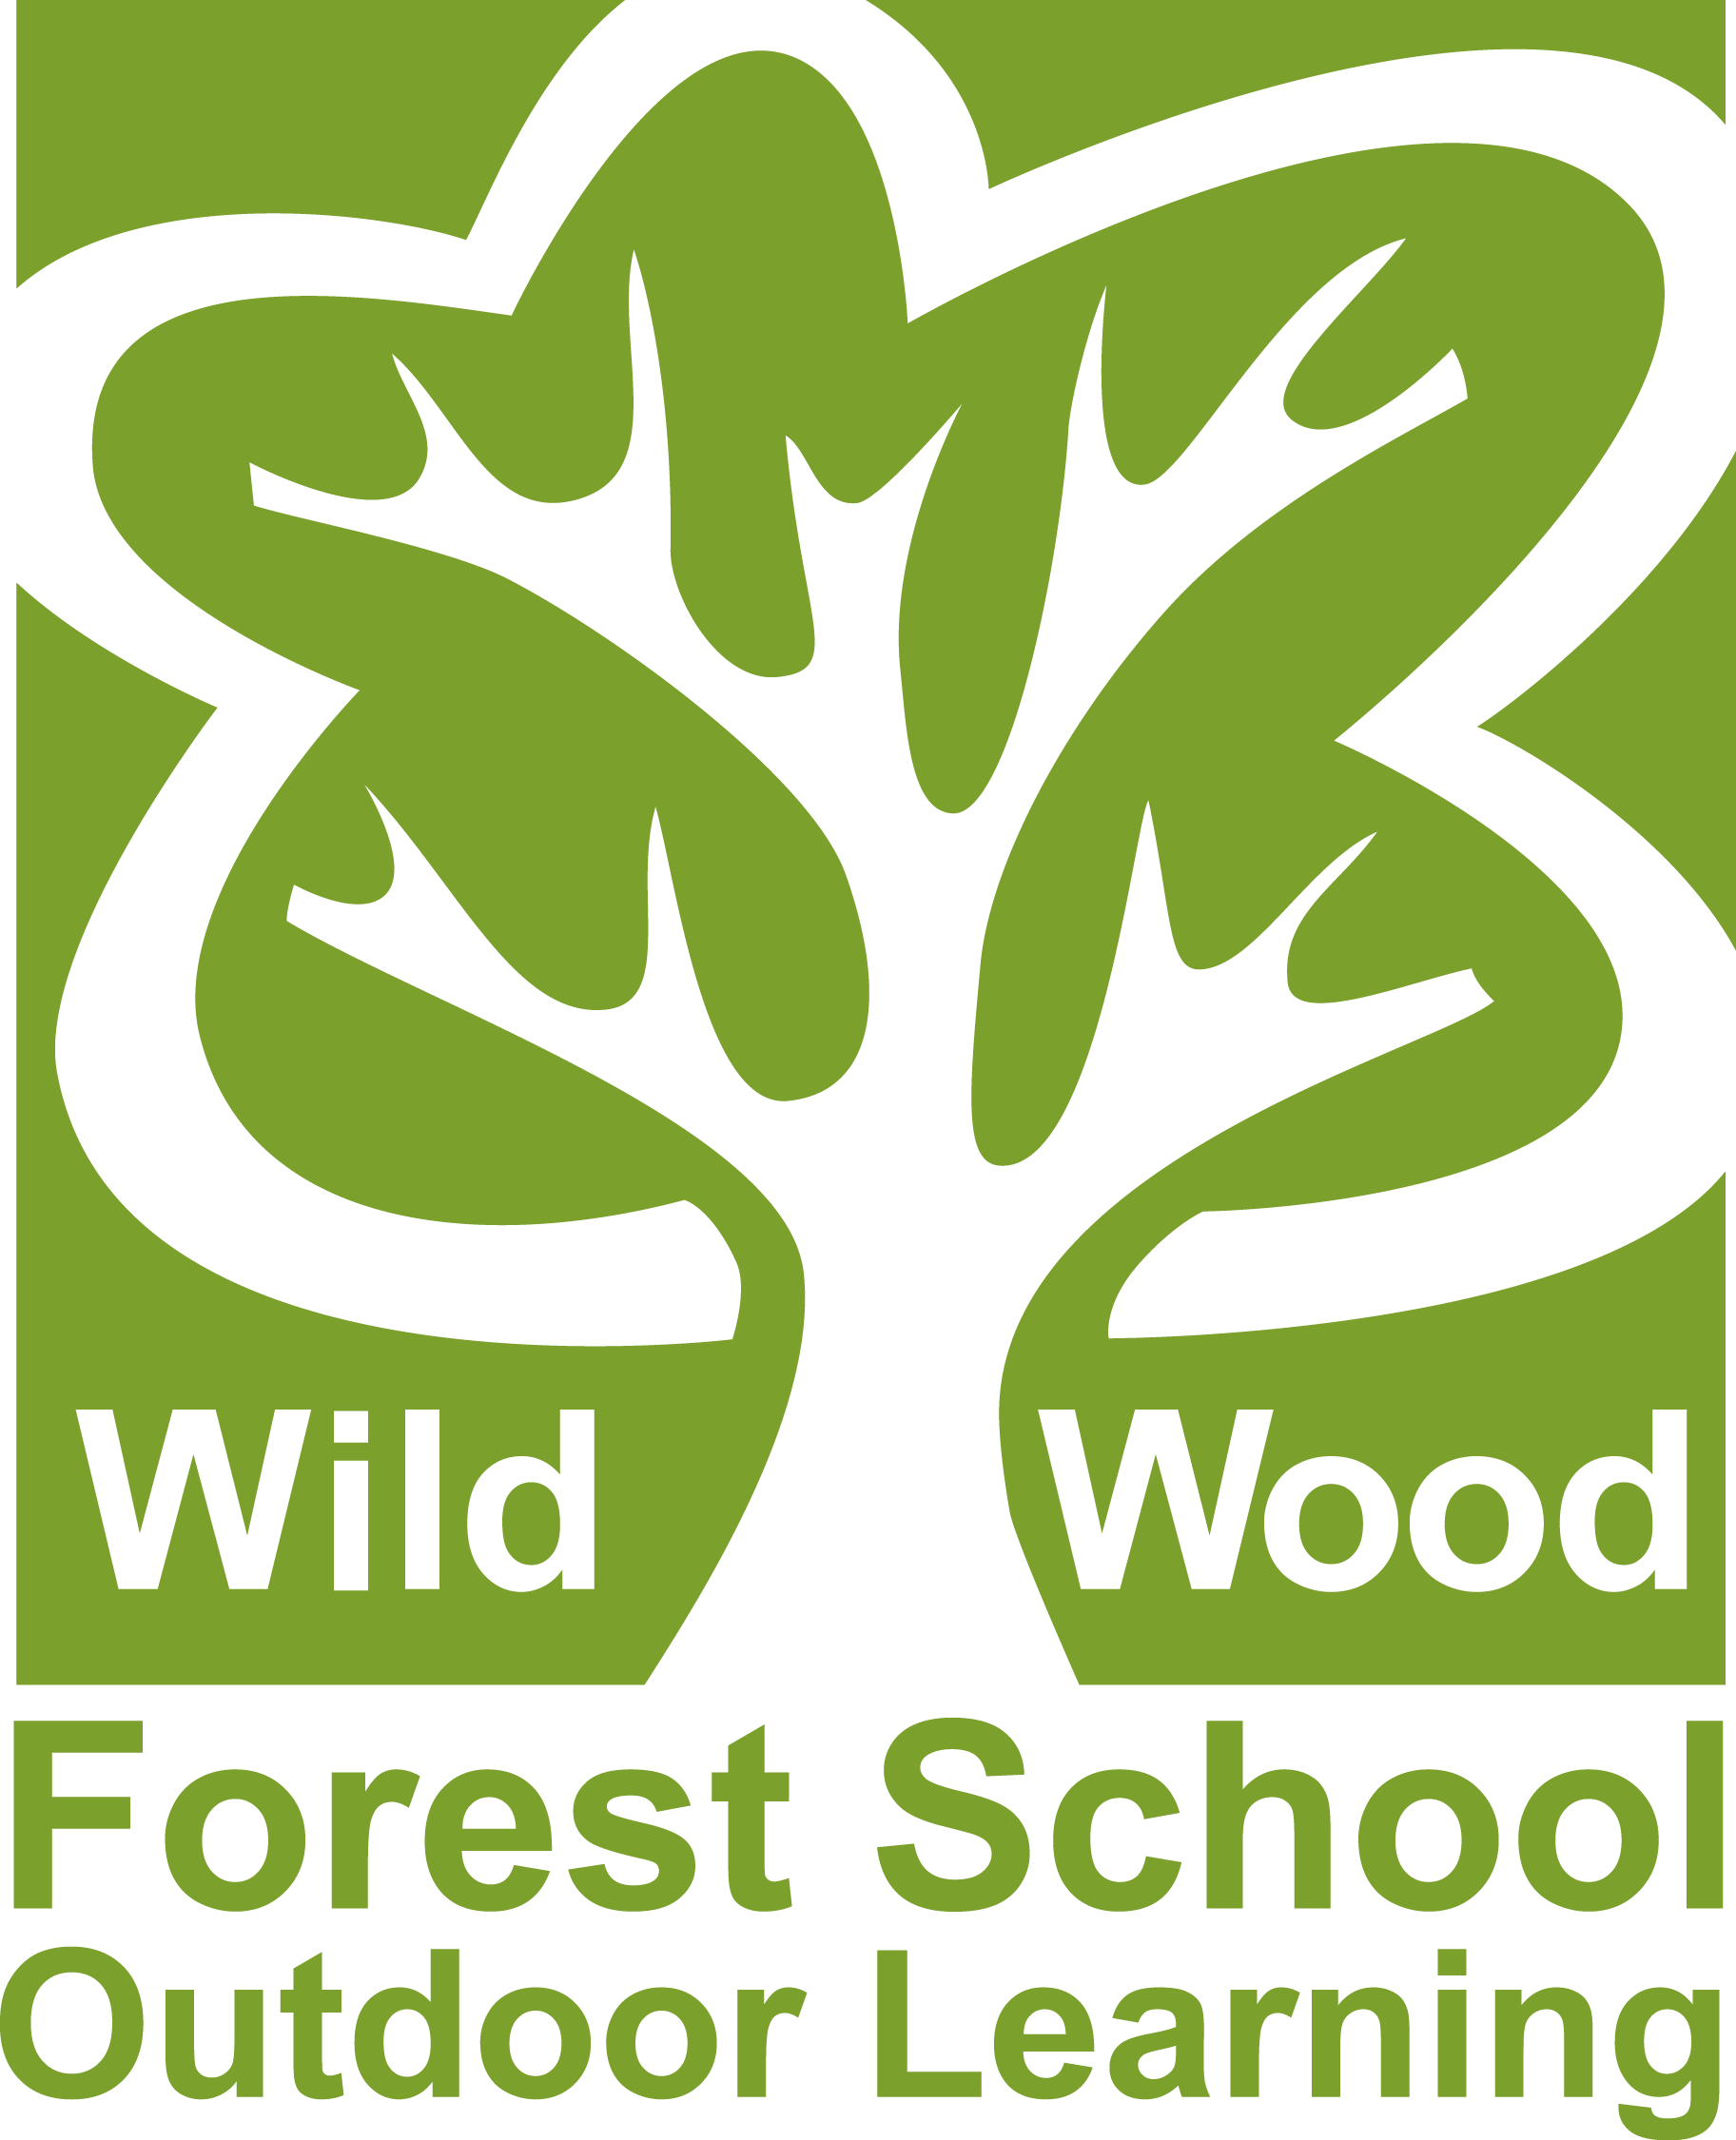 Wild Wood Forest School And Outdoor Learning Logo